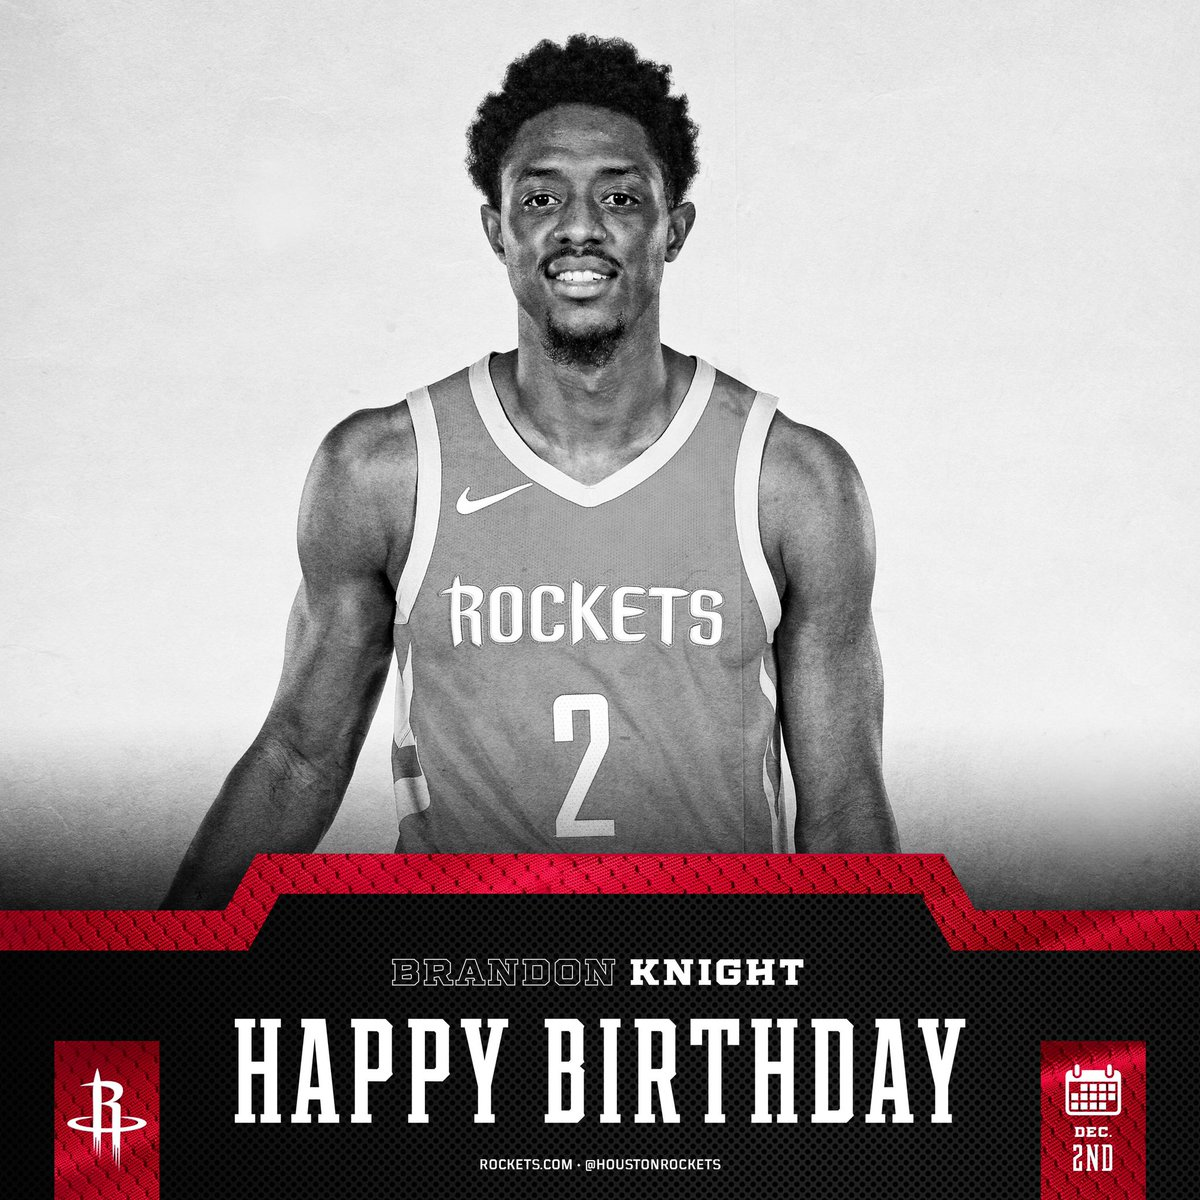 RT to wish @Goodknight11 a happy birthday! 🚀